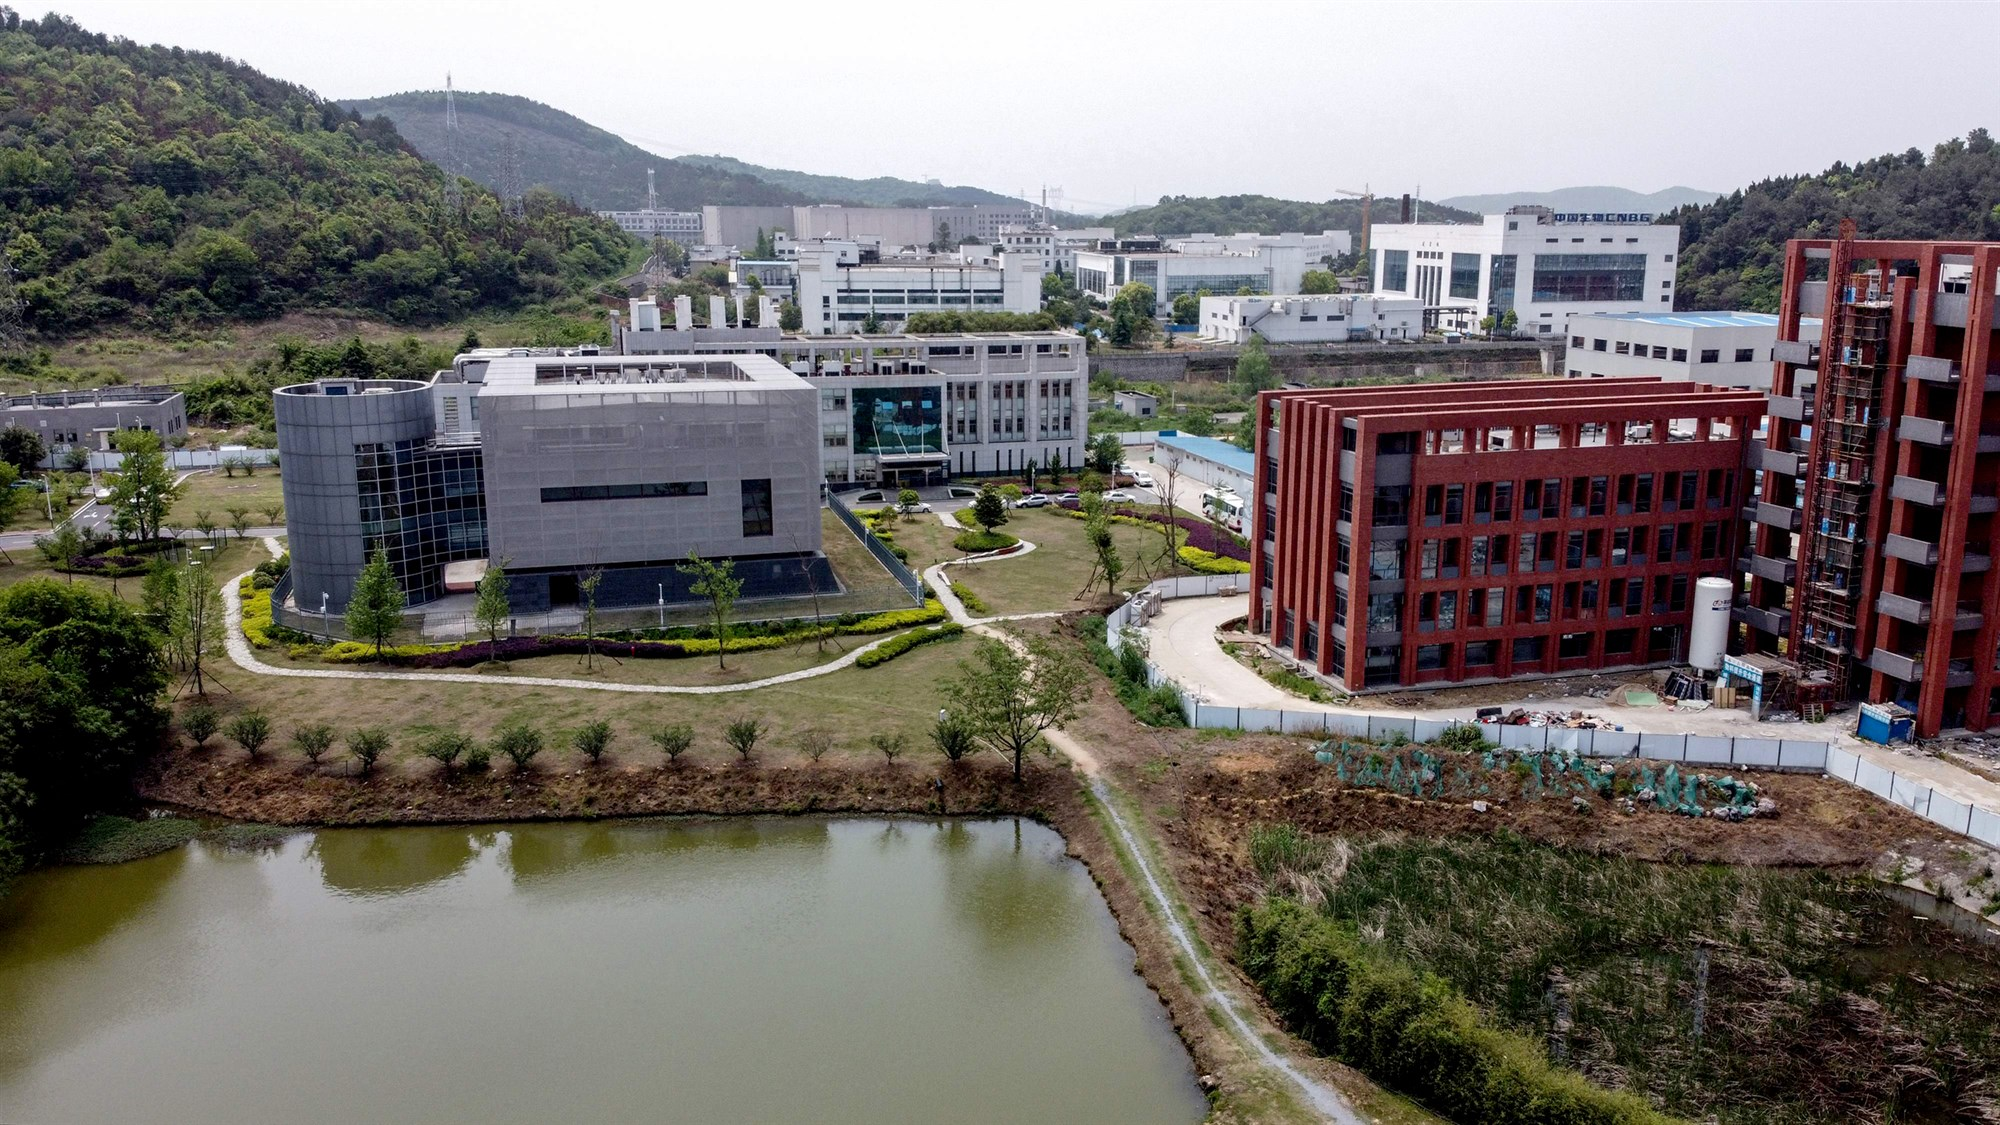 Wuhan laboratory closed in October due to coronavirus outbreak according to intel community